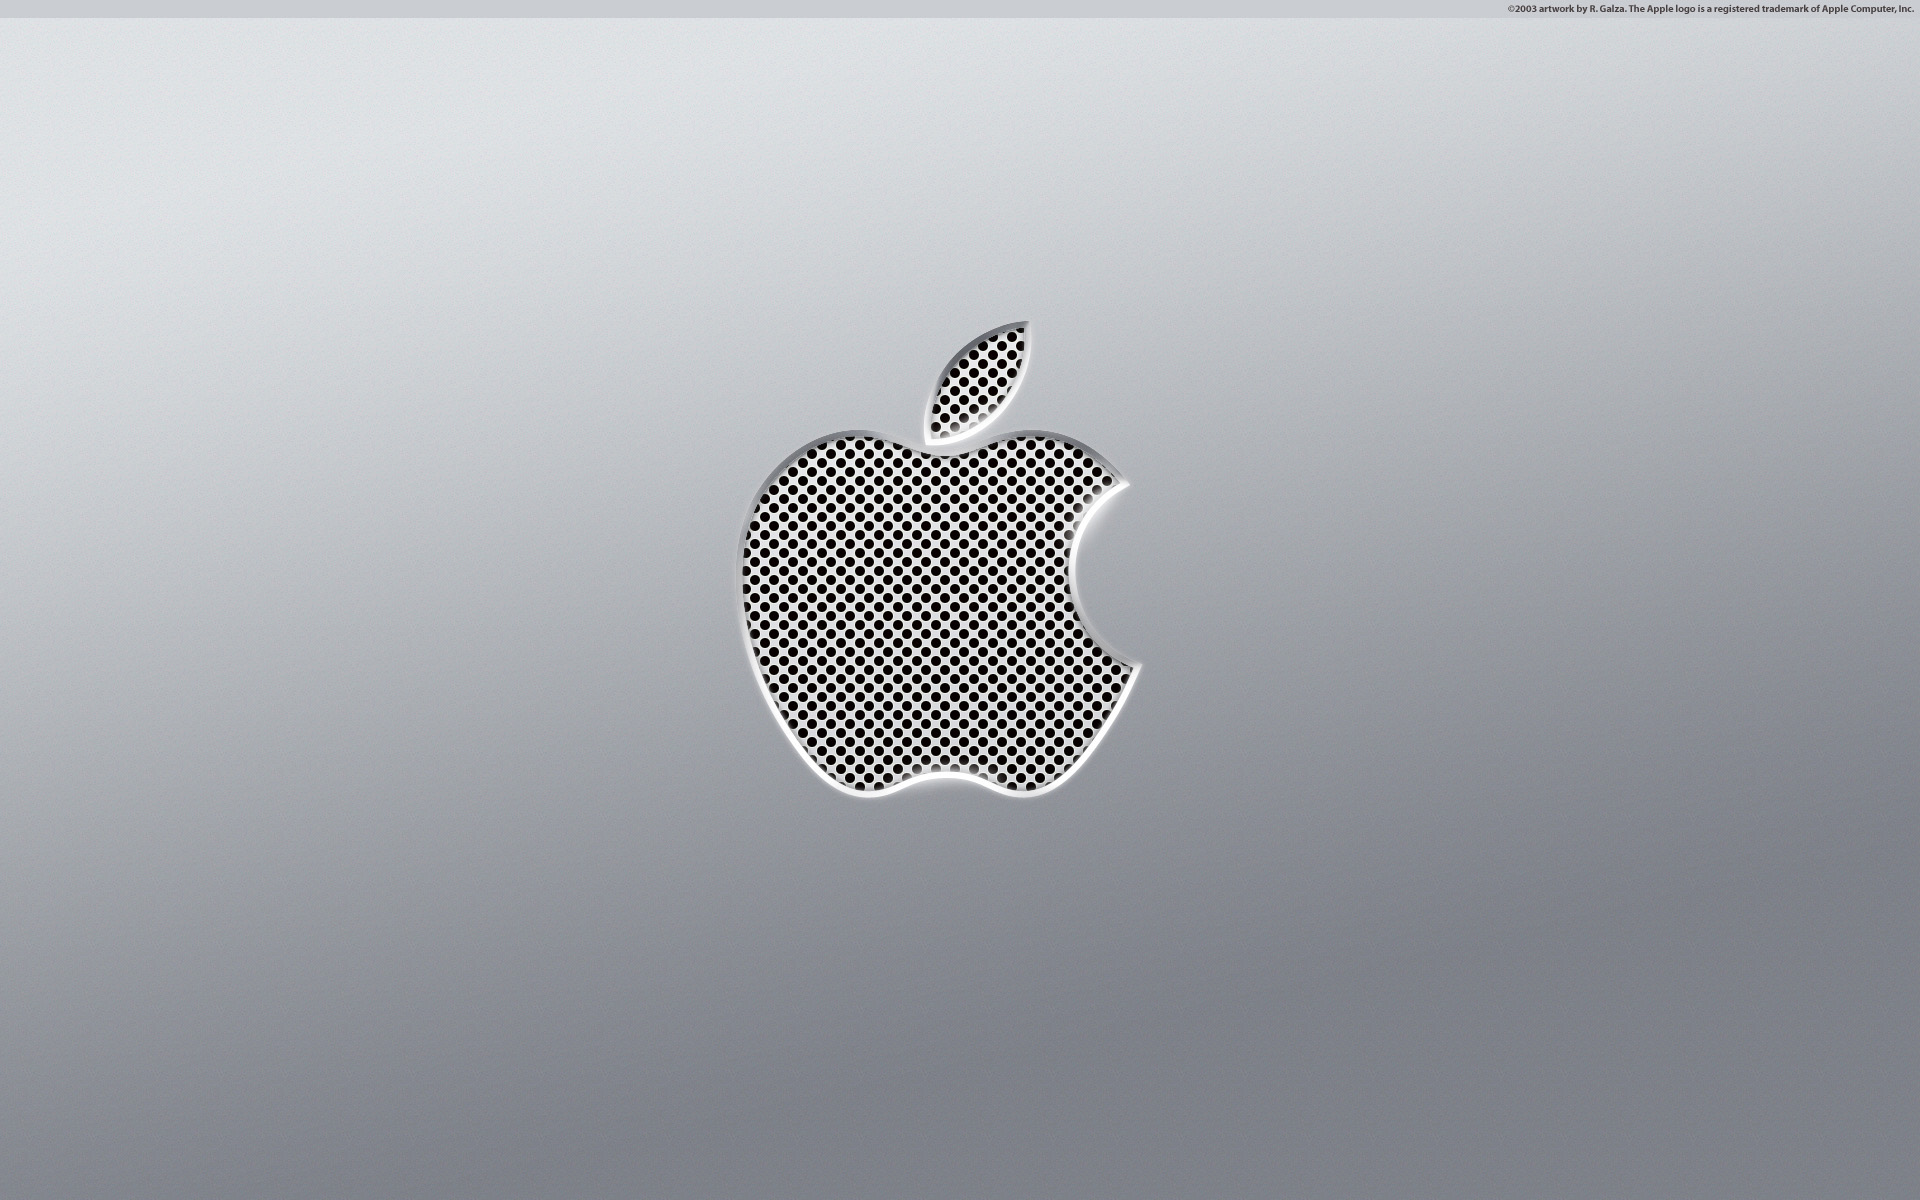 50 Inspiring Apple Mac & iPad Wallpapers For Download: becuo.com/apple-background